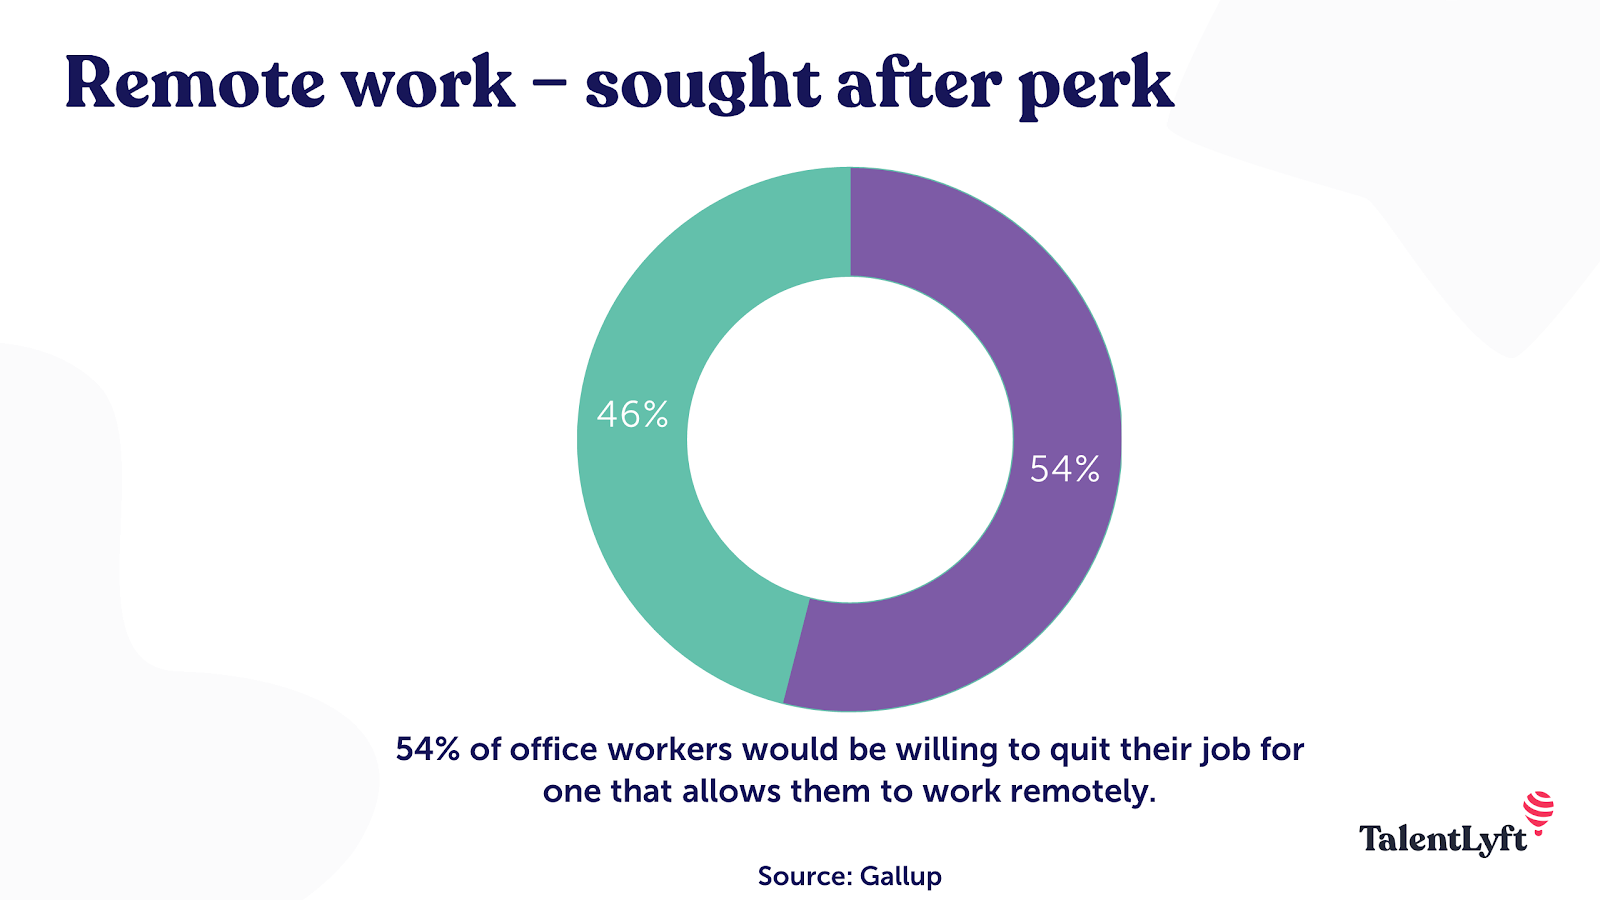 Remote work - sought after perk